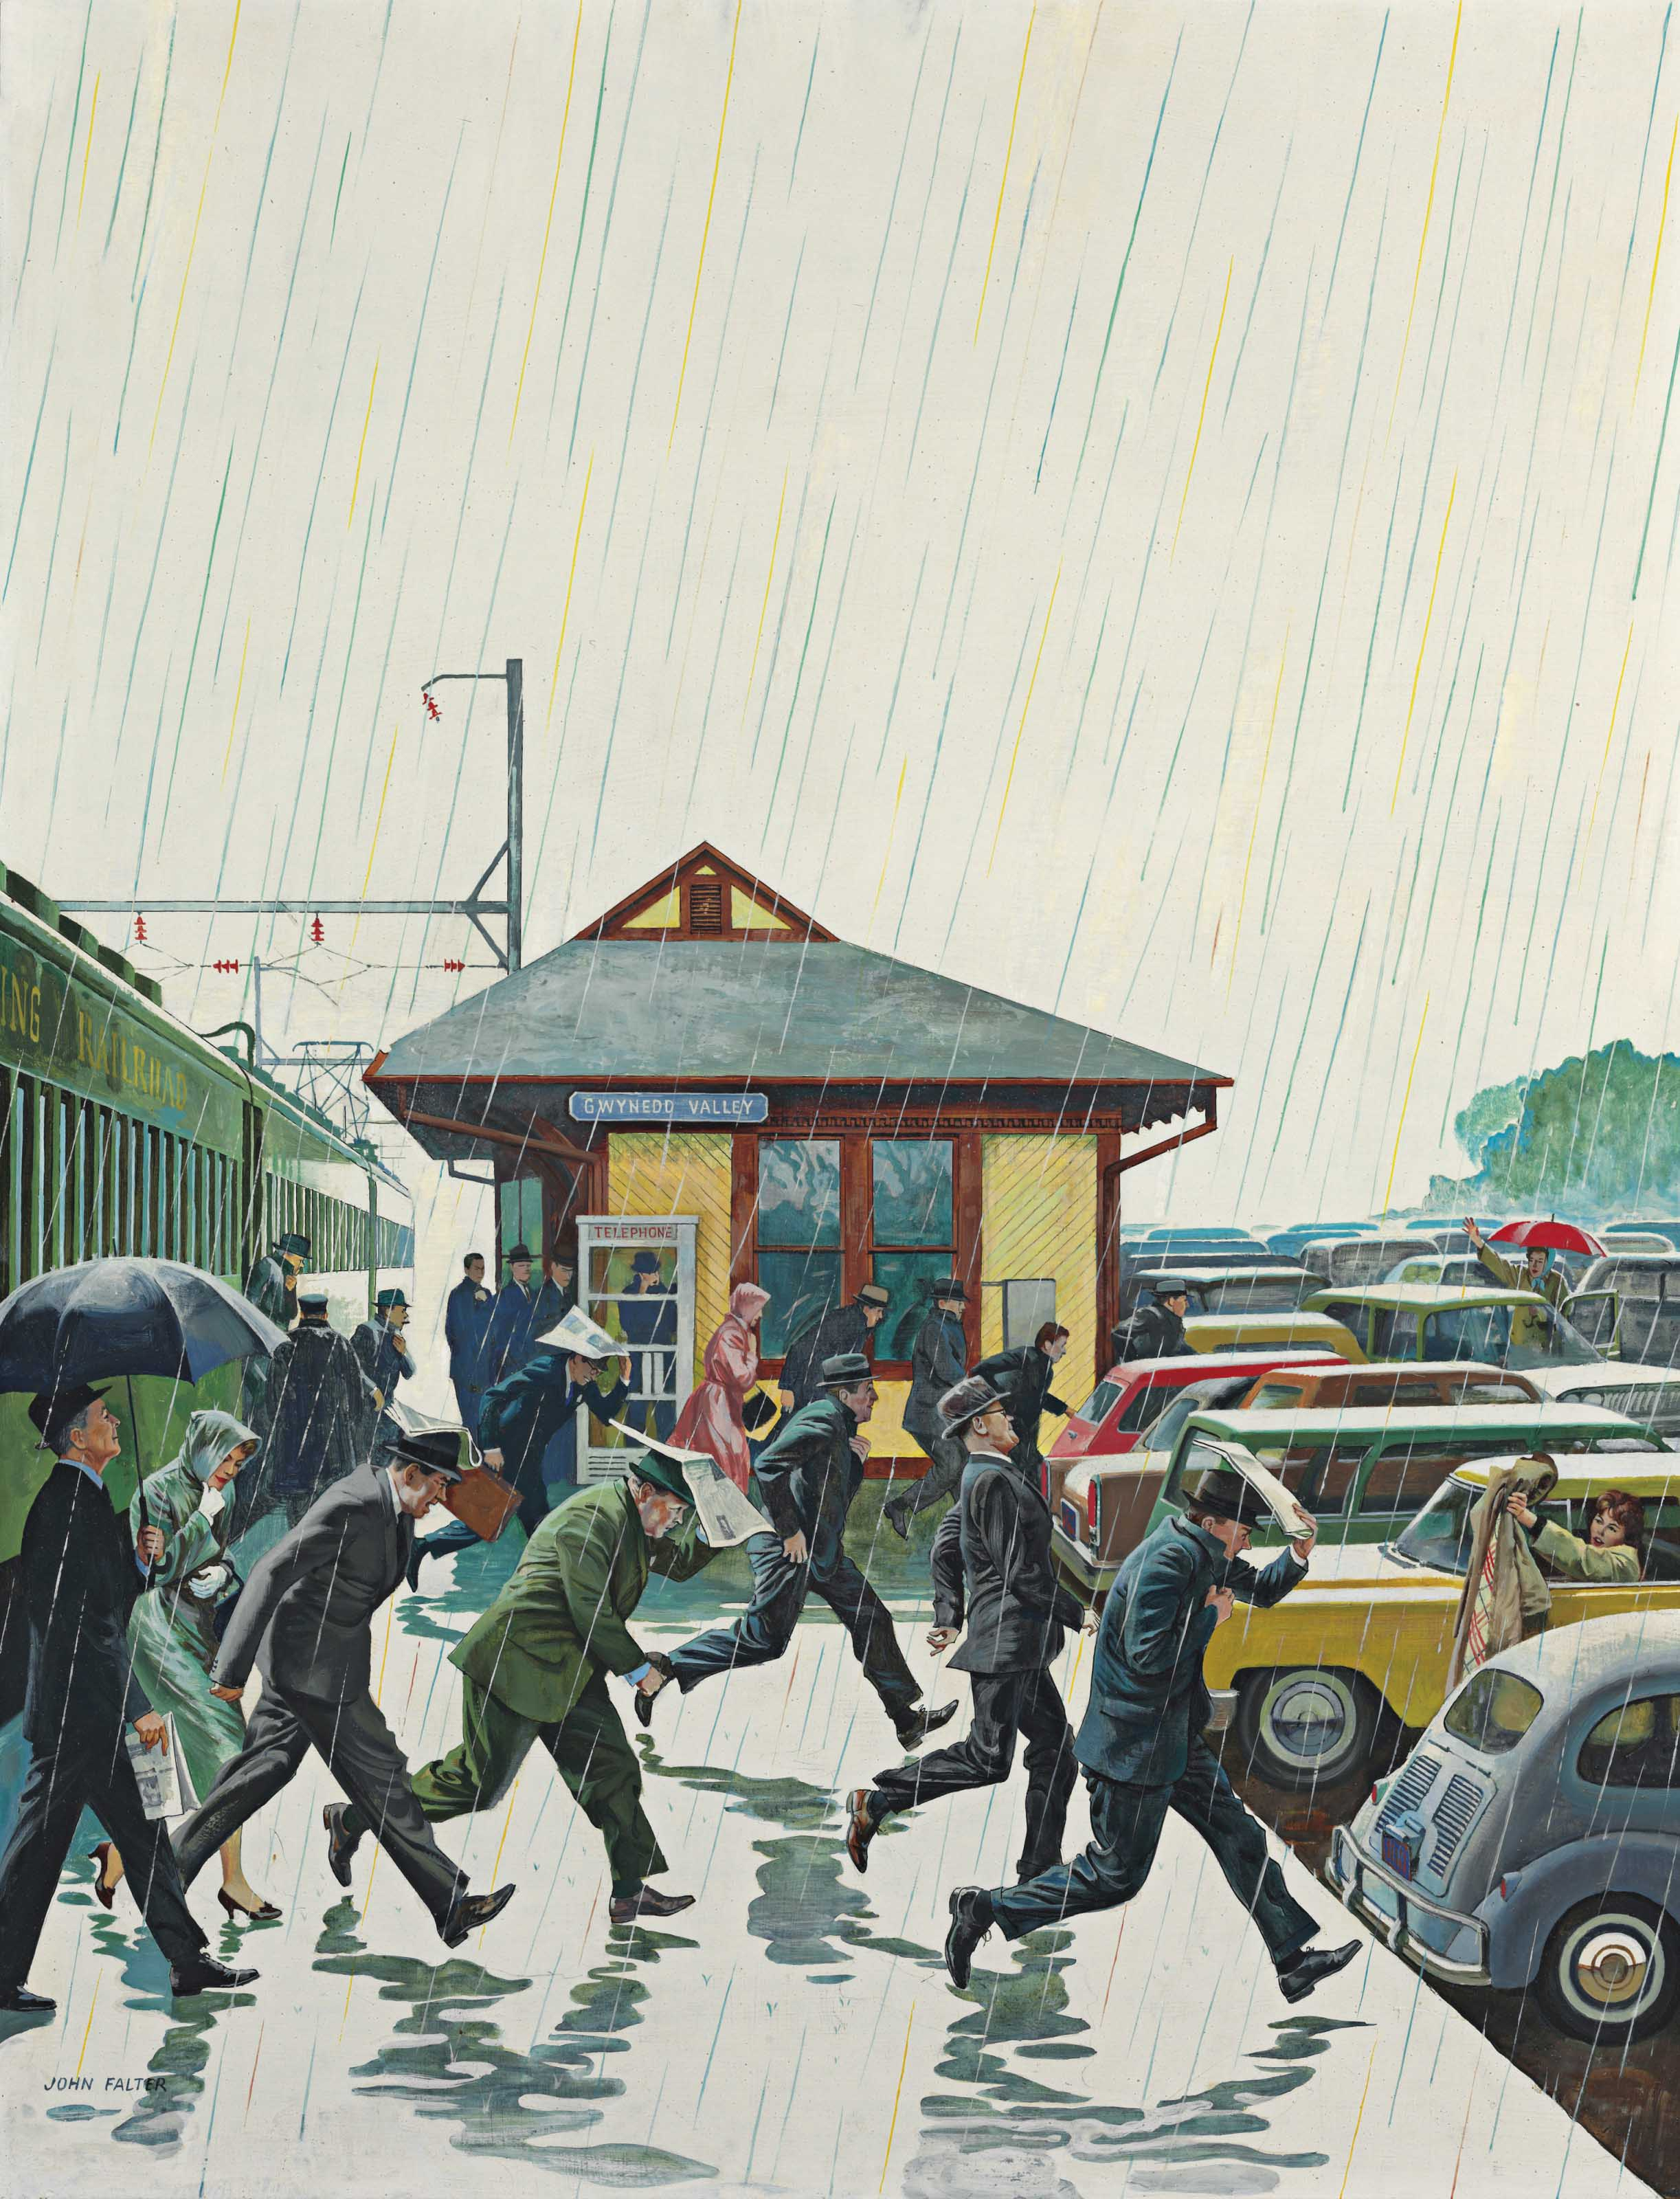 Commuters in the Rain